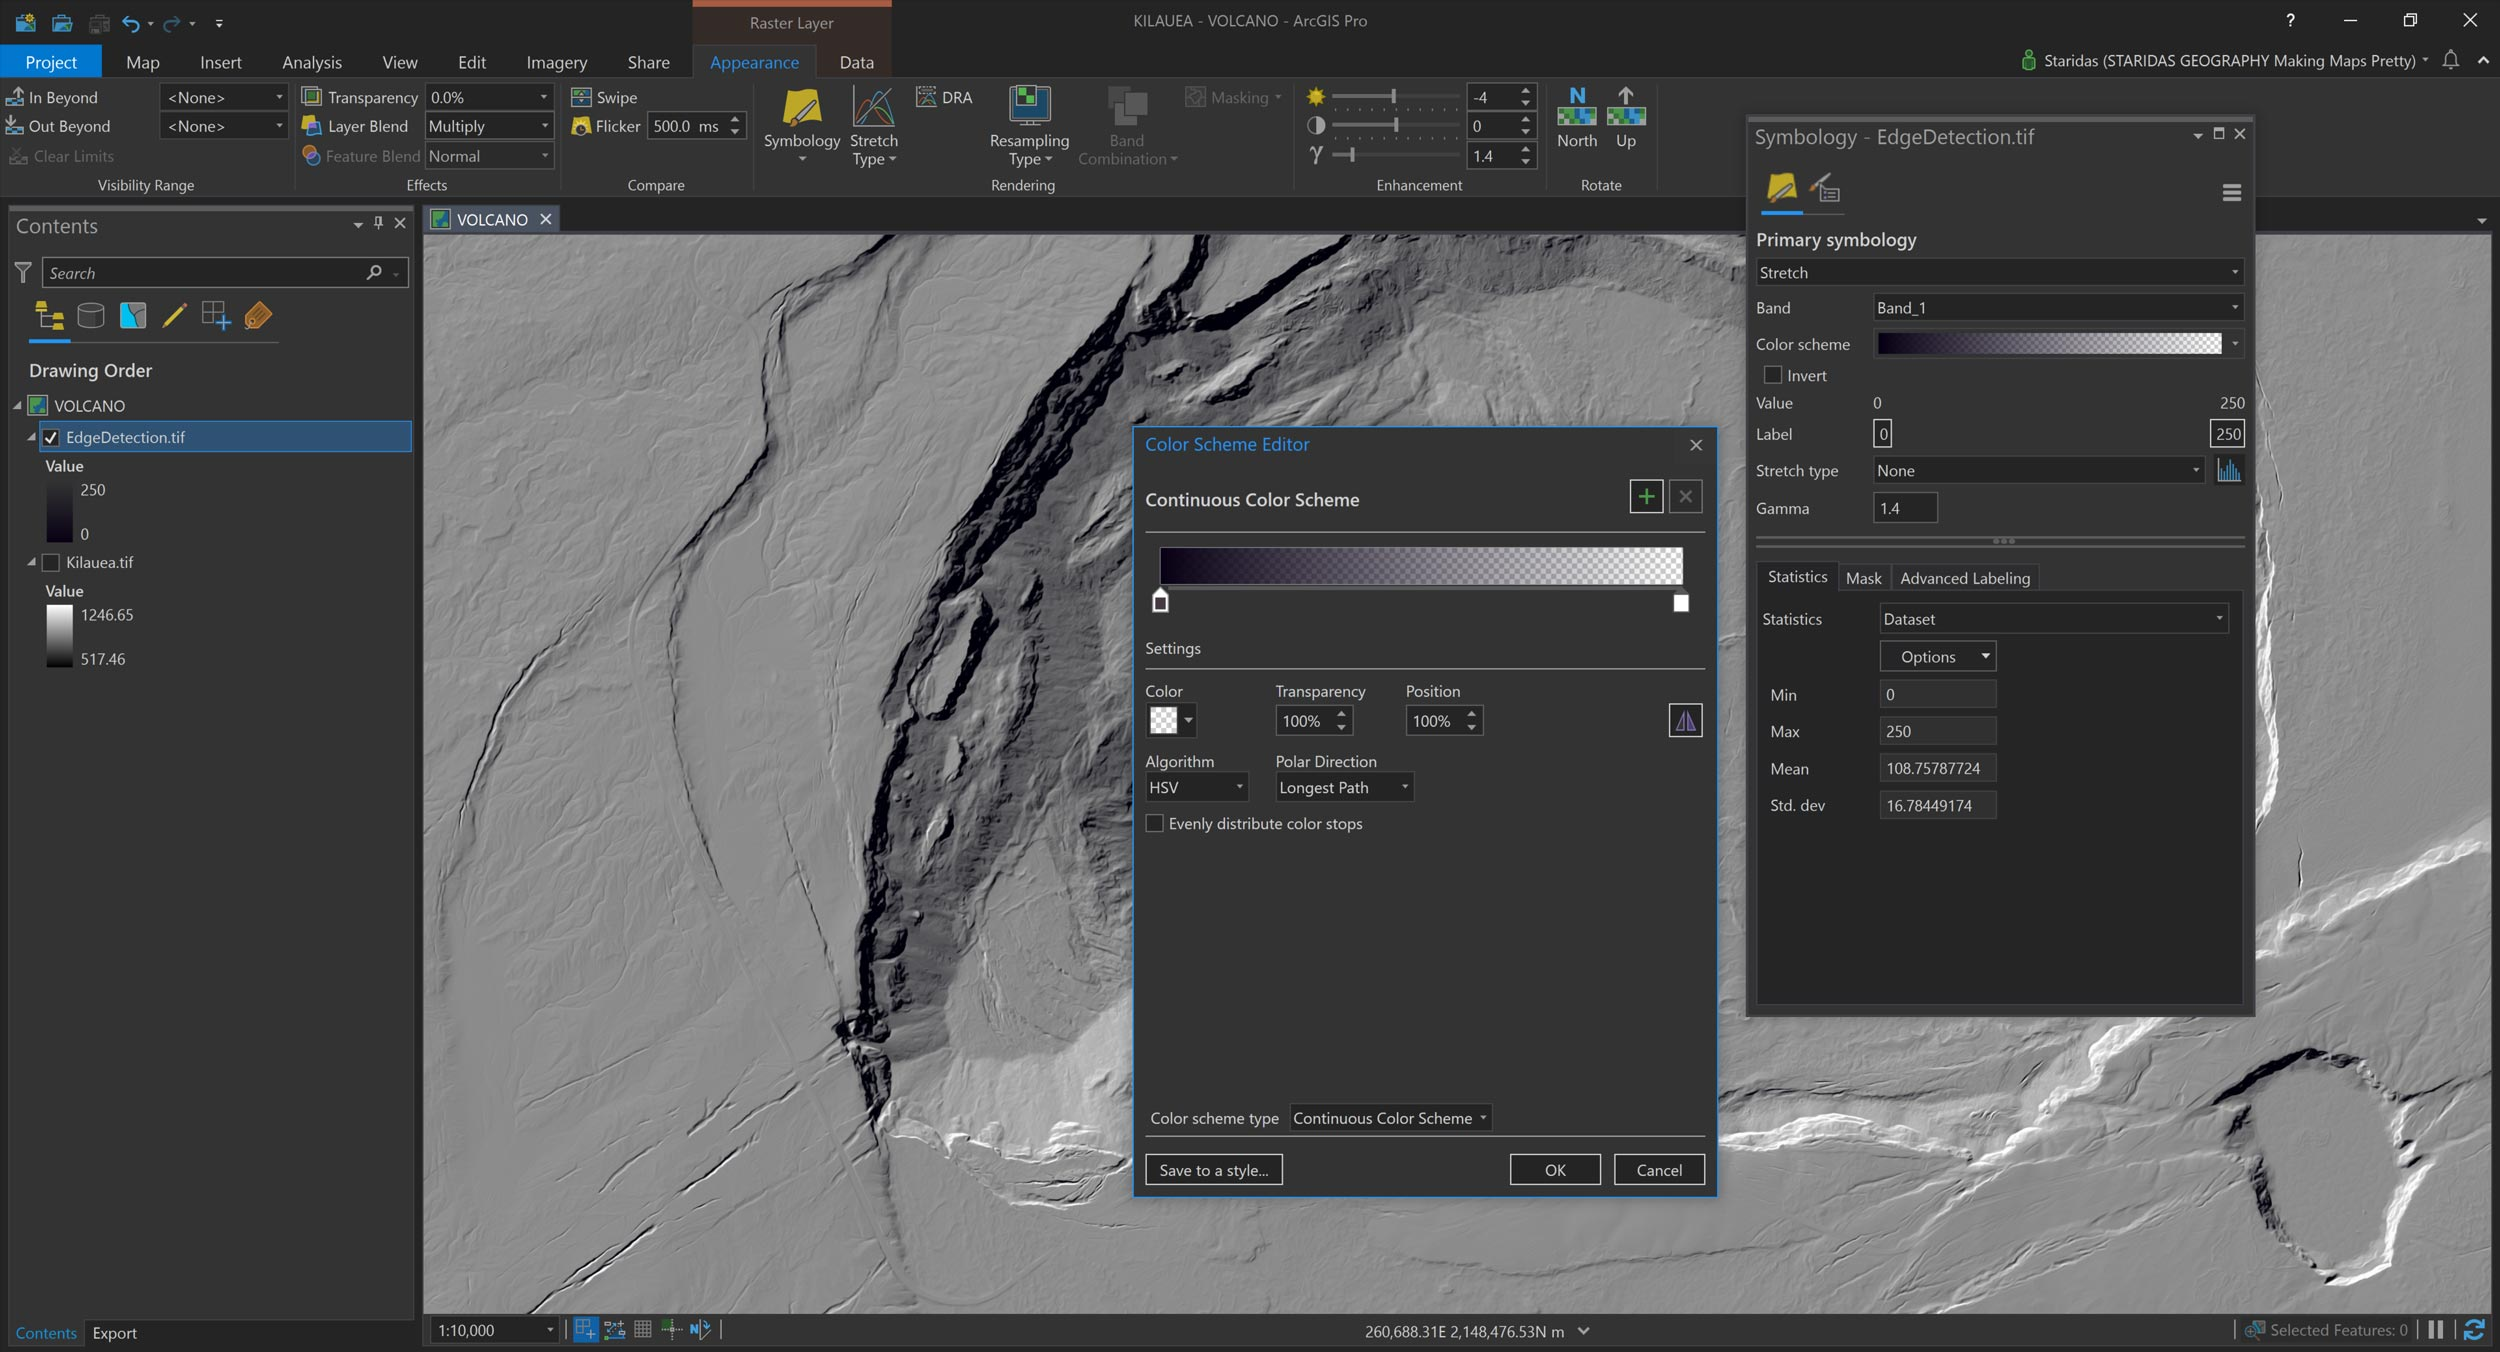 Picture 9: Rendering the filtered EdgeDetection raster in ArcGIS Pro